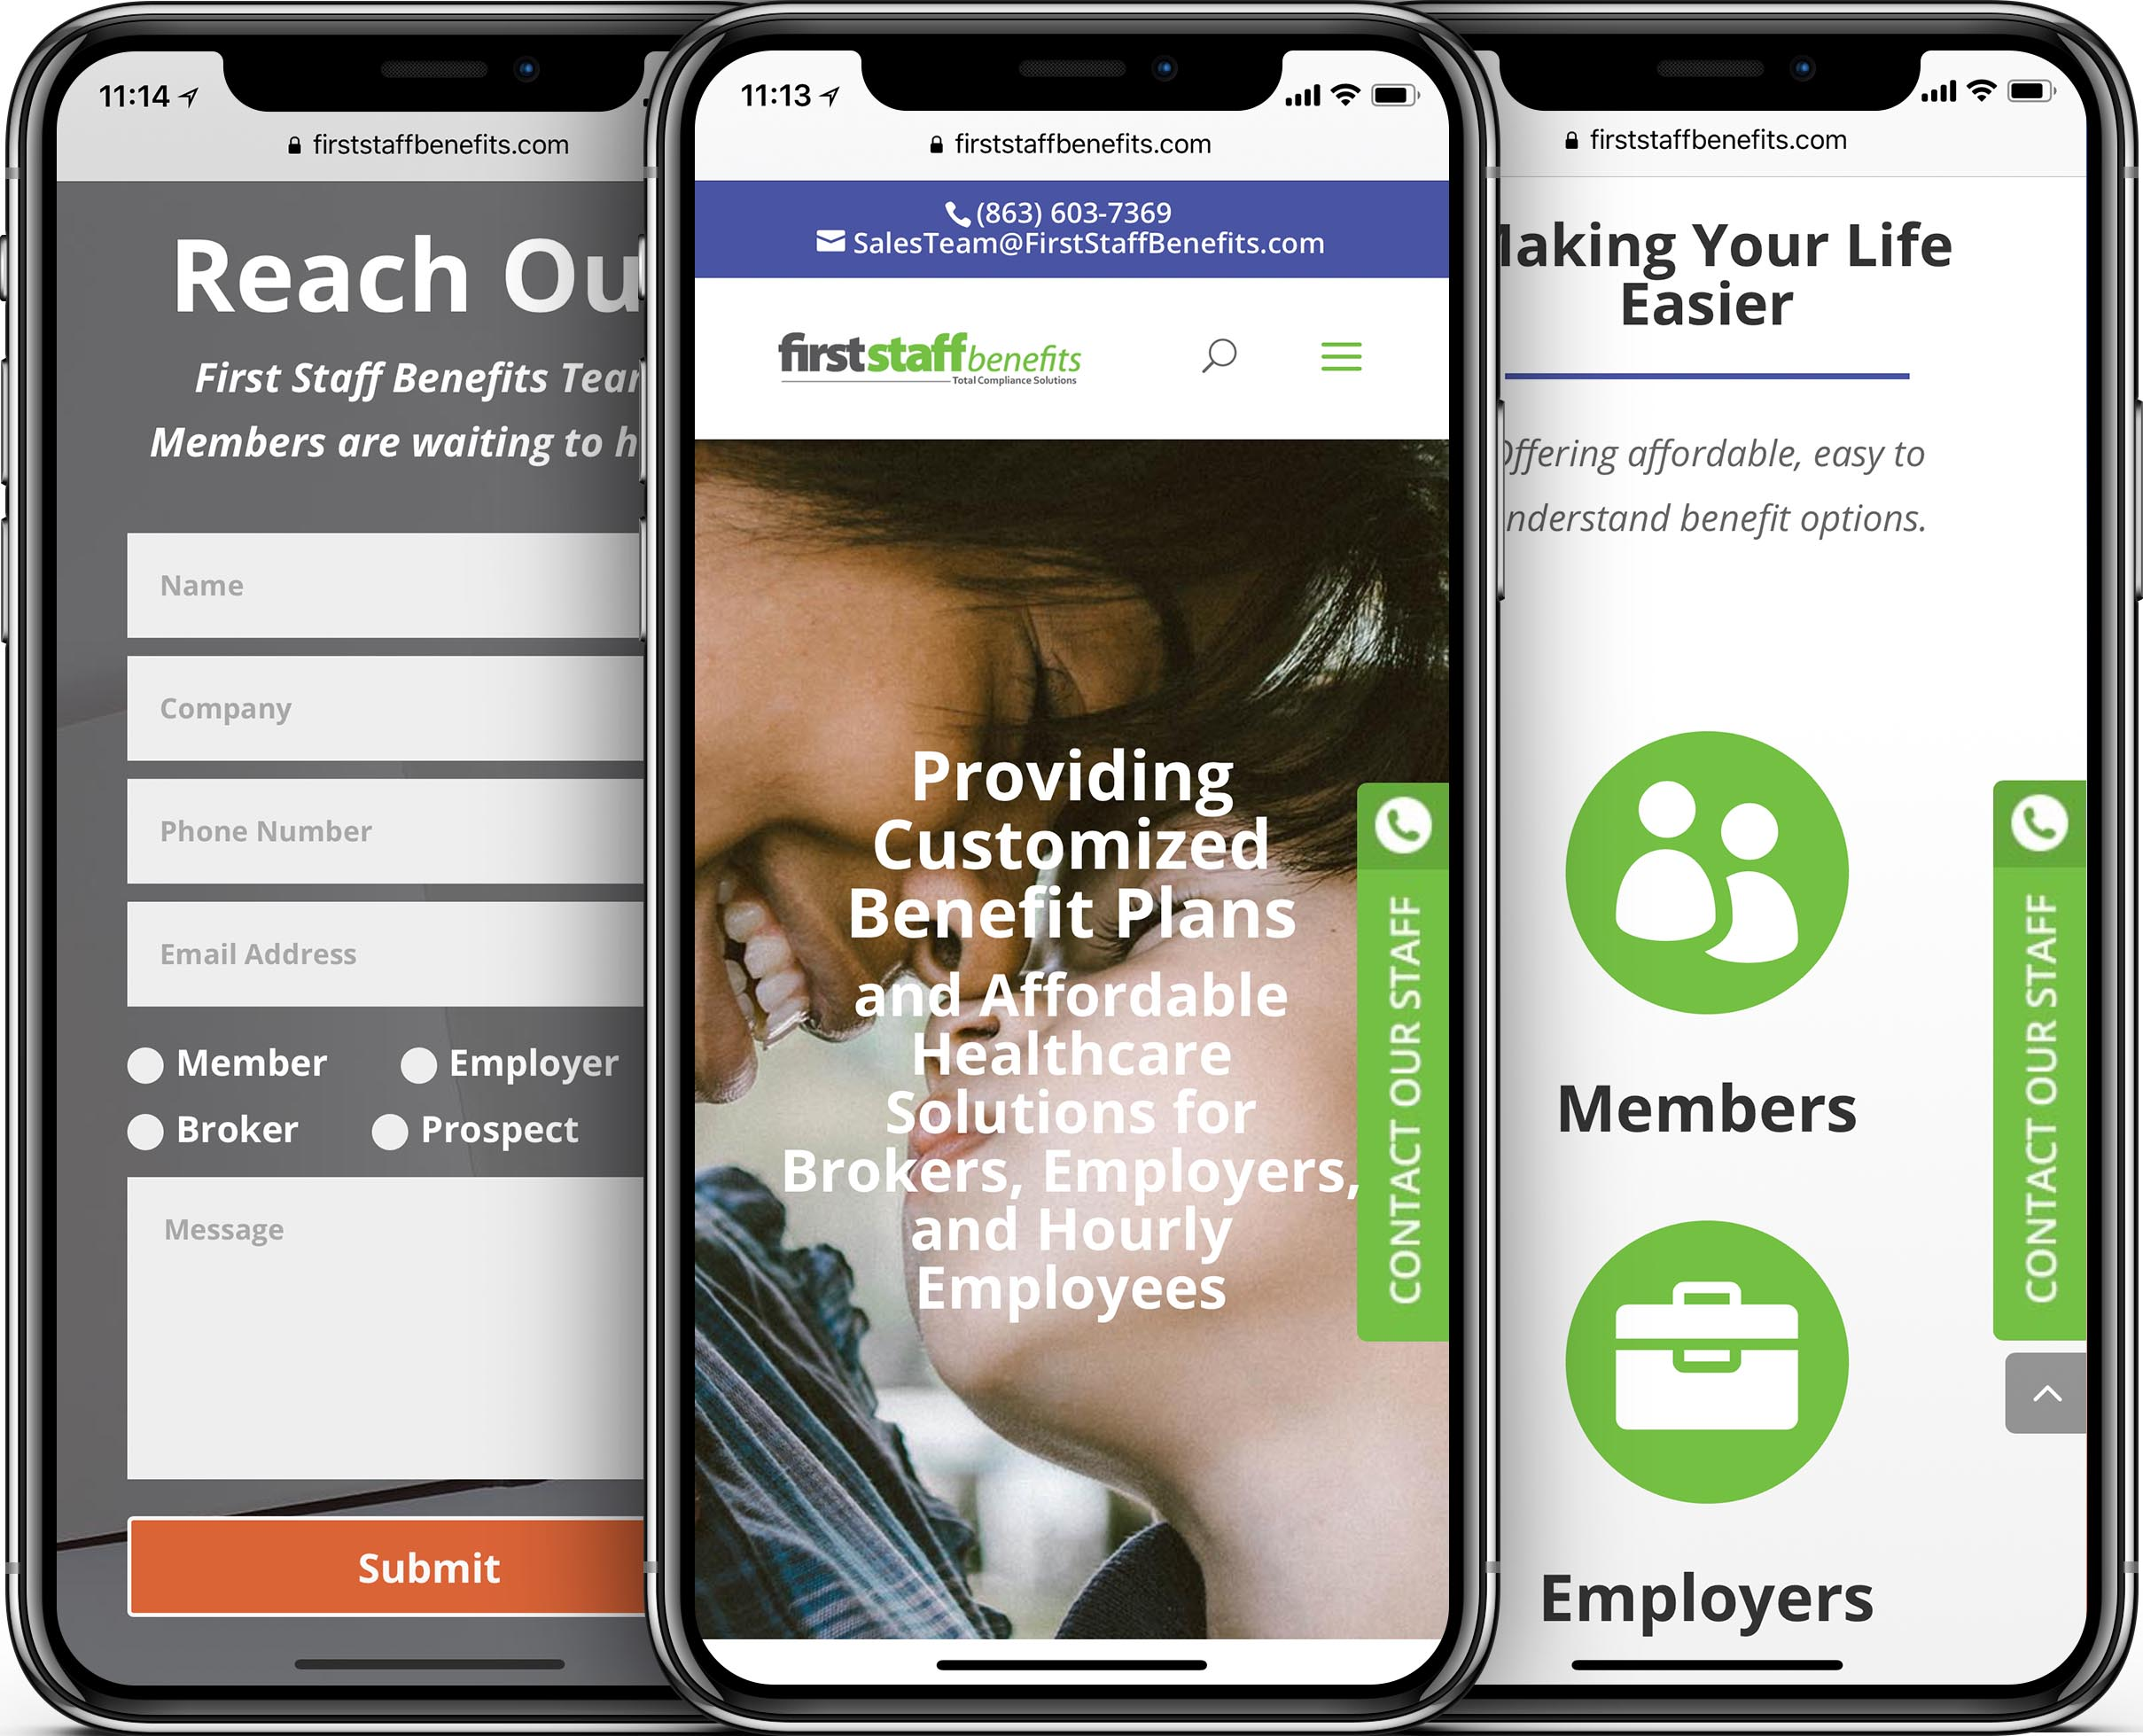 First Staff Benefits Mobile-Friendly Web Design